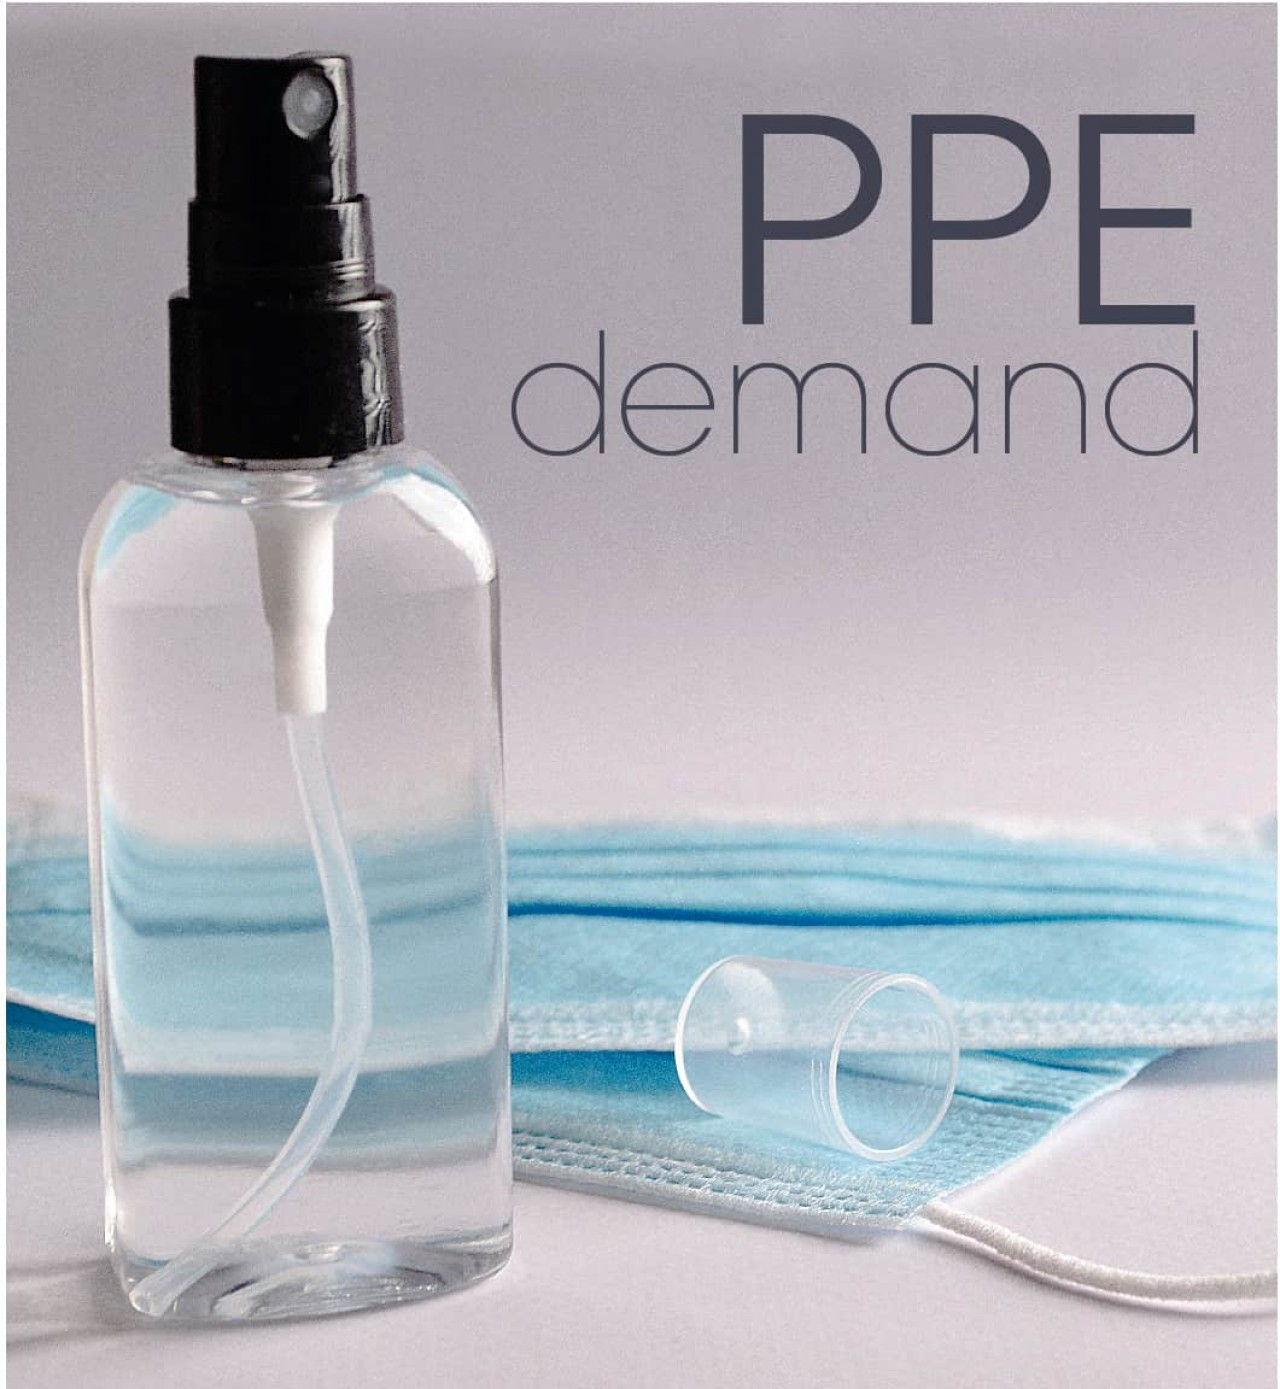 PPE Demand and Promotional Products